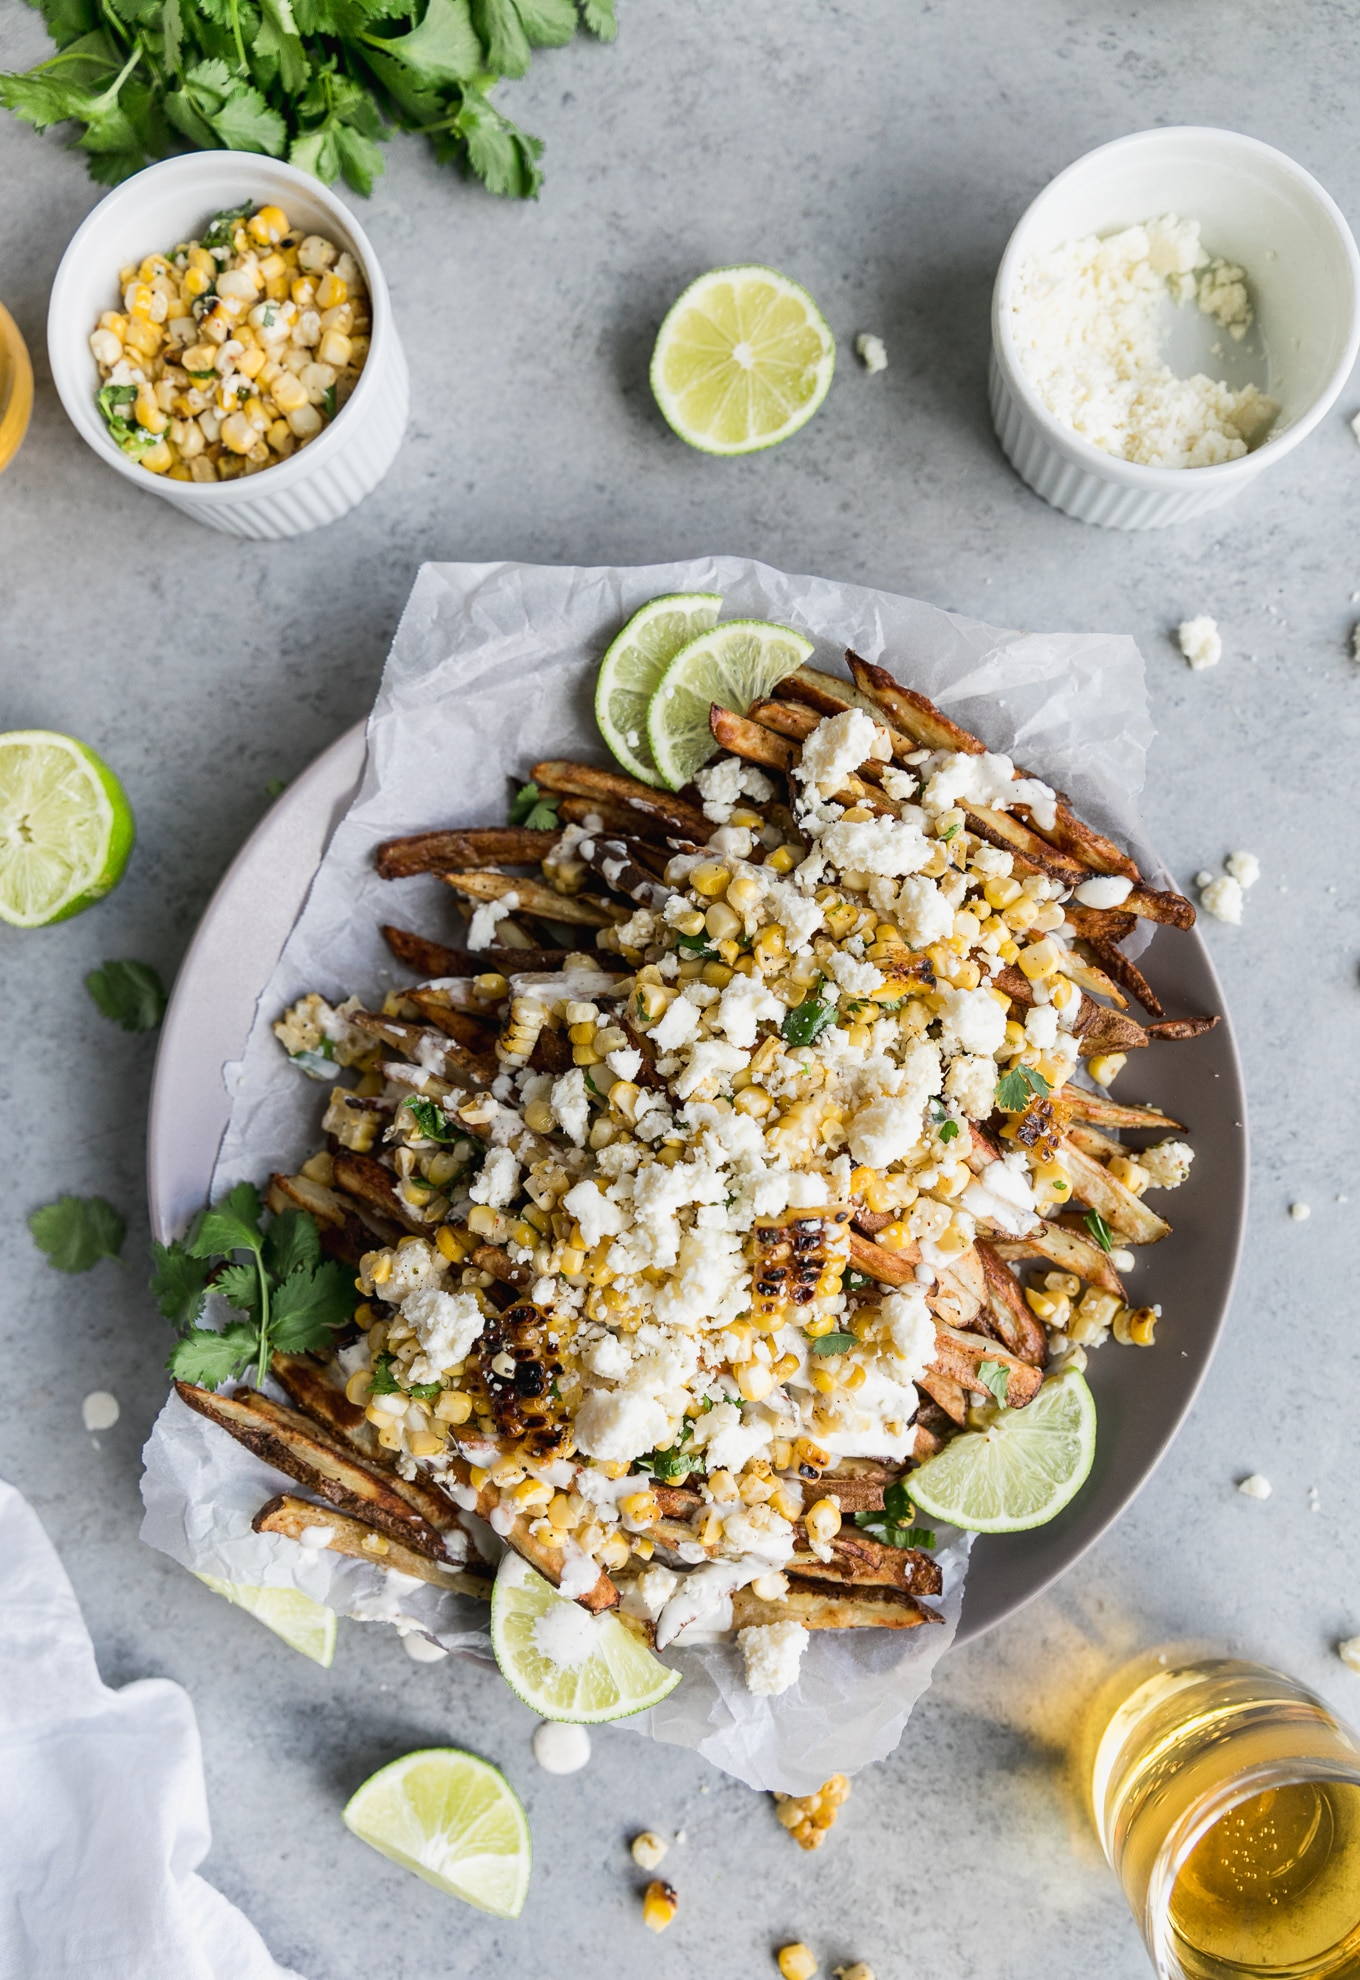 Overhead shot of fries topped with Mexican street corn, crema, lime wedges, and cilantro, with extra crumbled cotija cheese on top